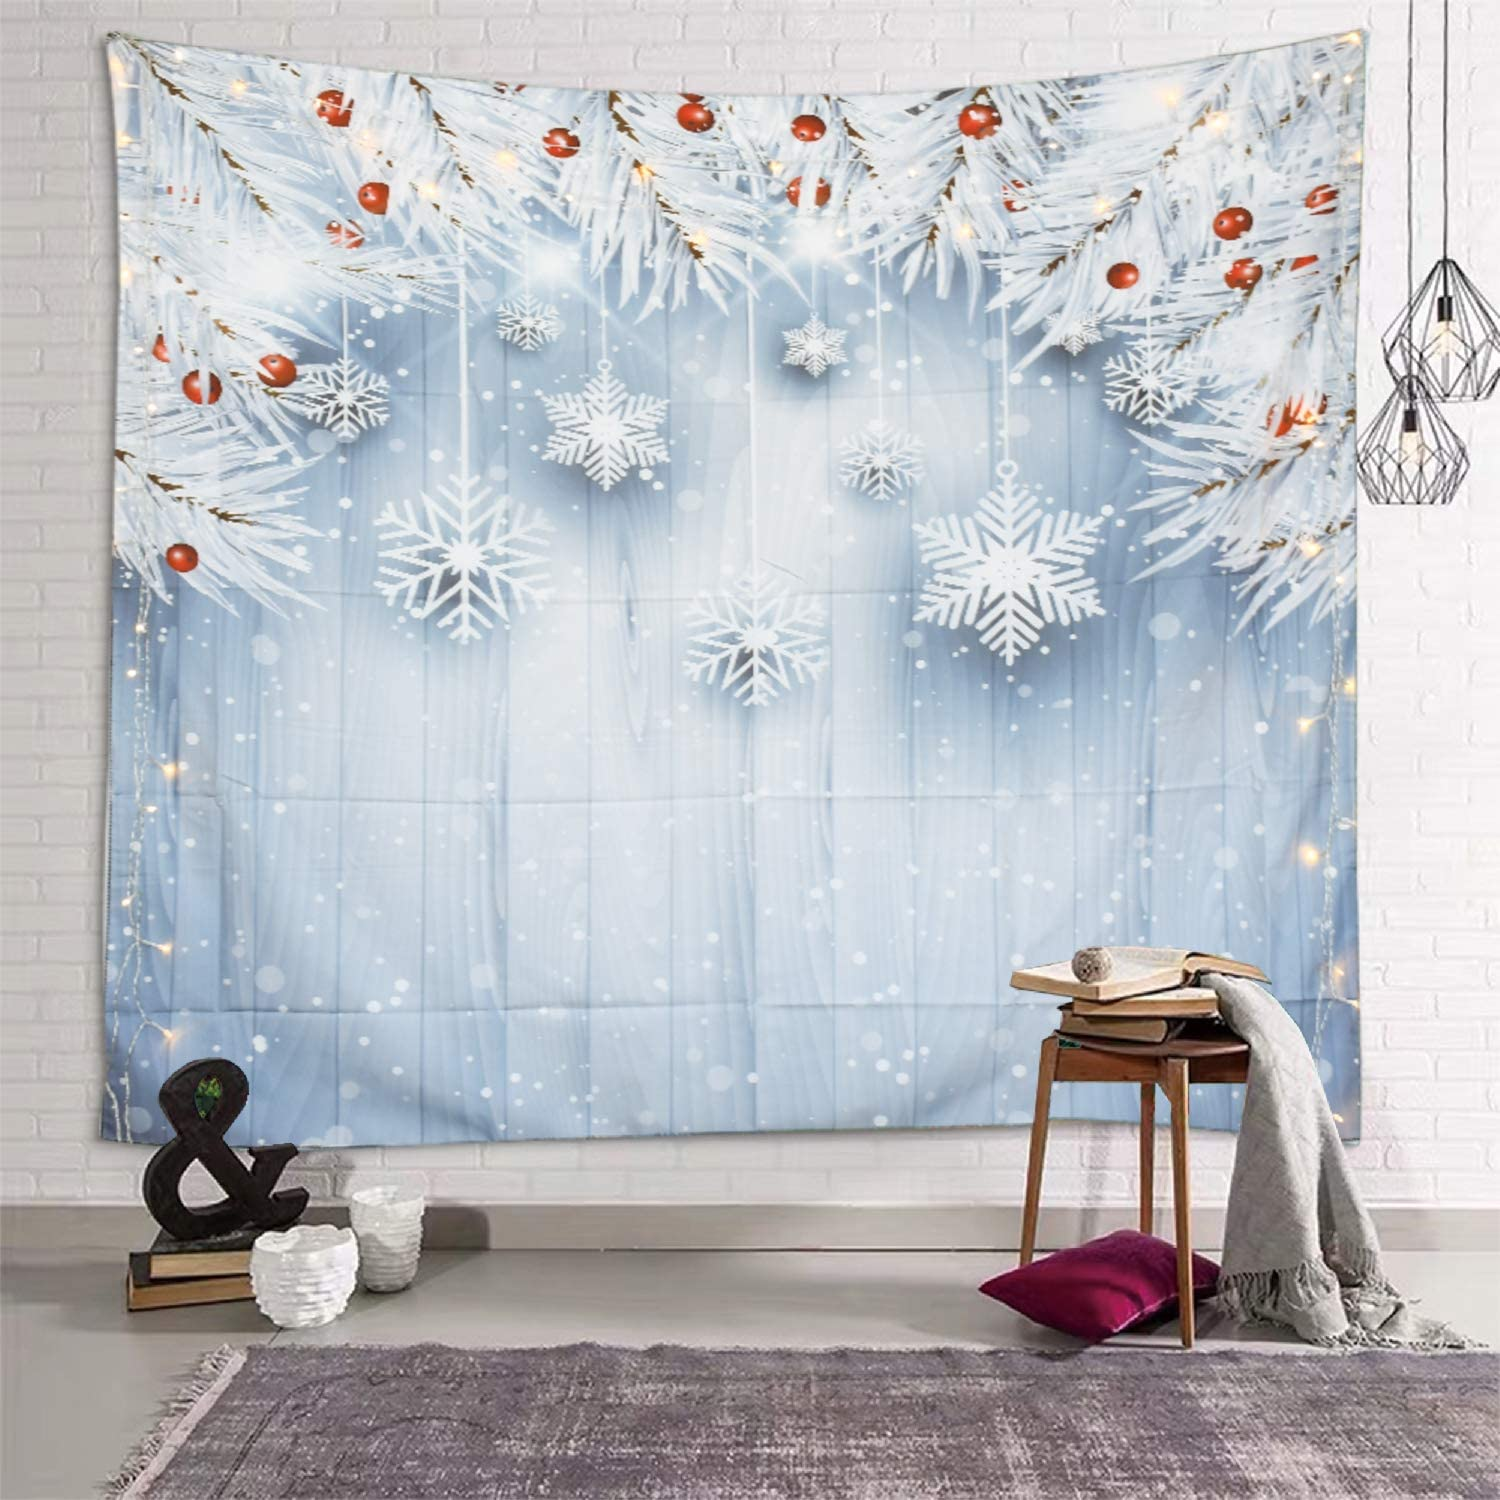 Sevendec Christmas Tapestry Wall Hanging Xmas White Snowflakes Leaves Board Wall Tapestry for Party Livingroom Bedroom Dorm Home Decor W59